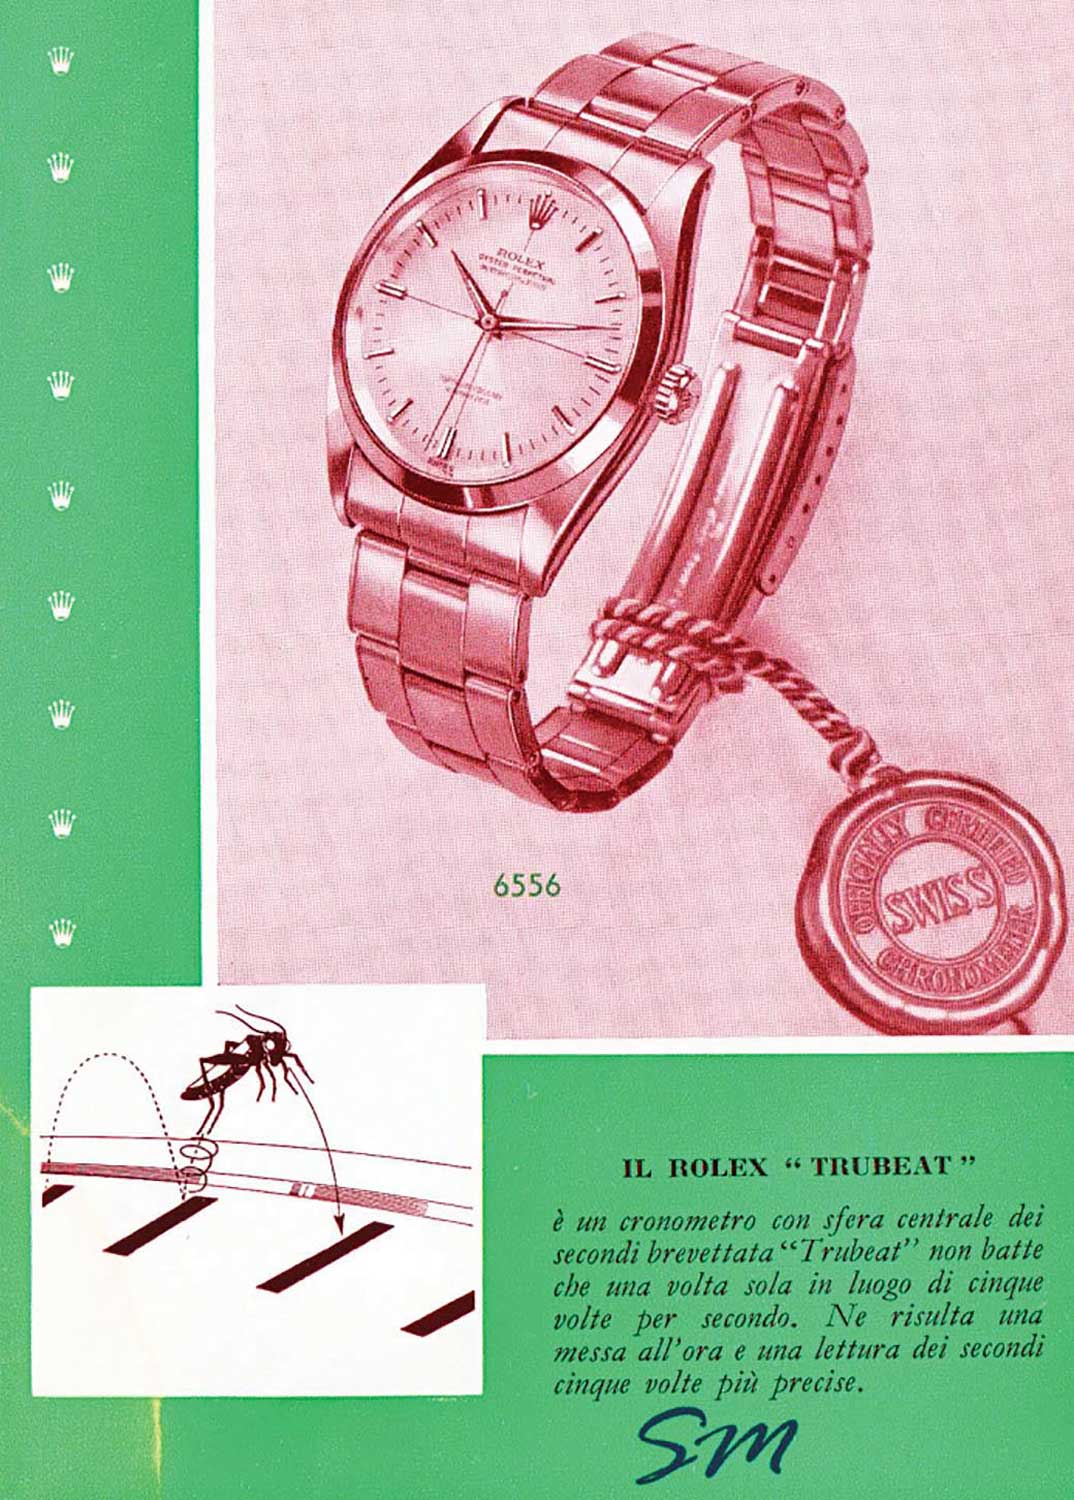 Rolex Truebeat advertisement